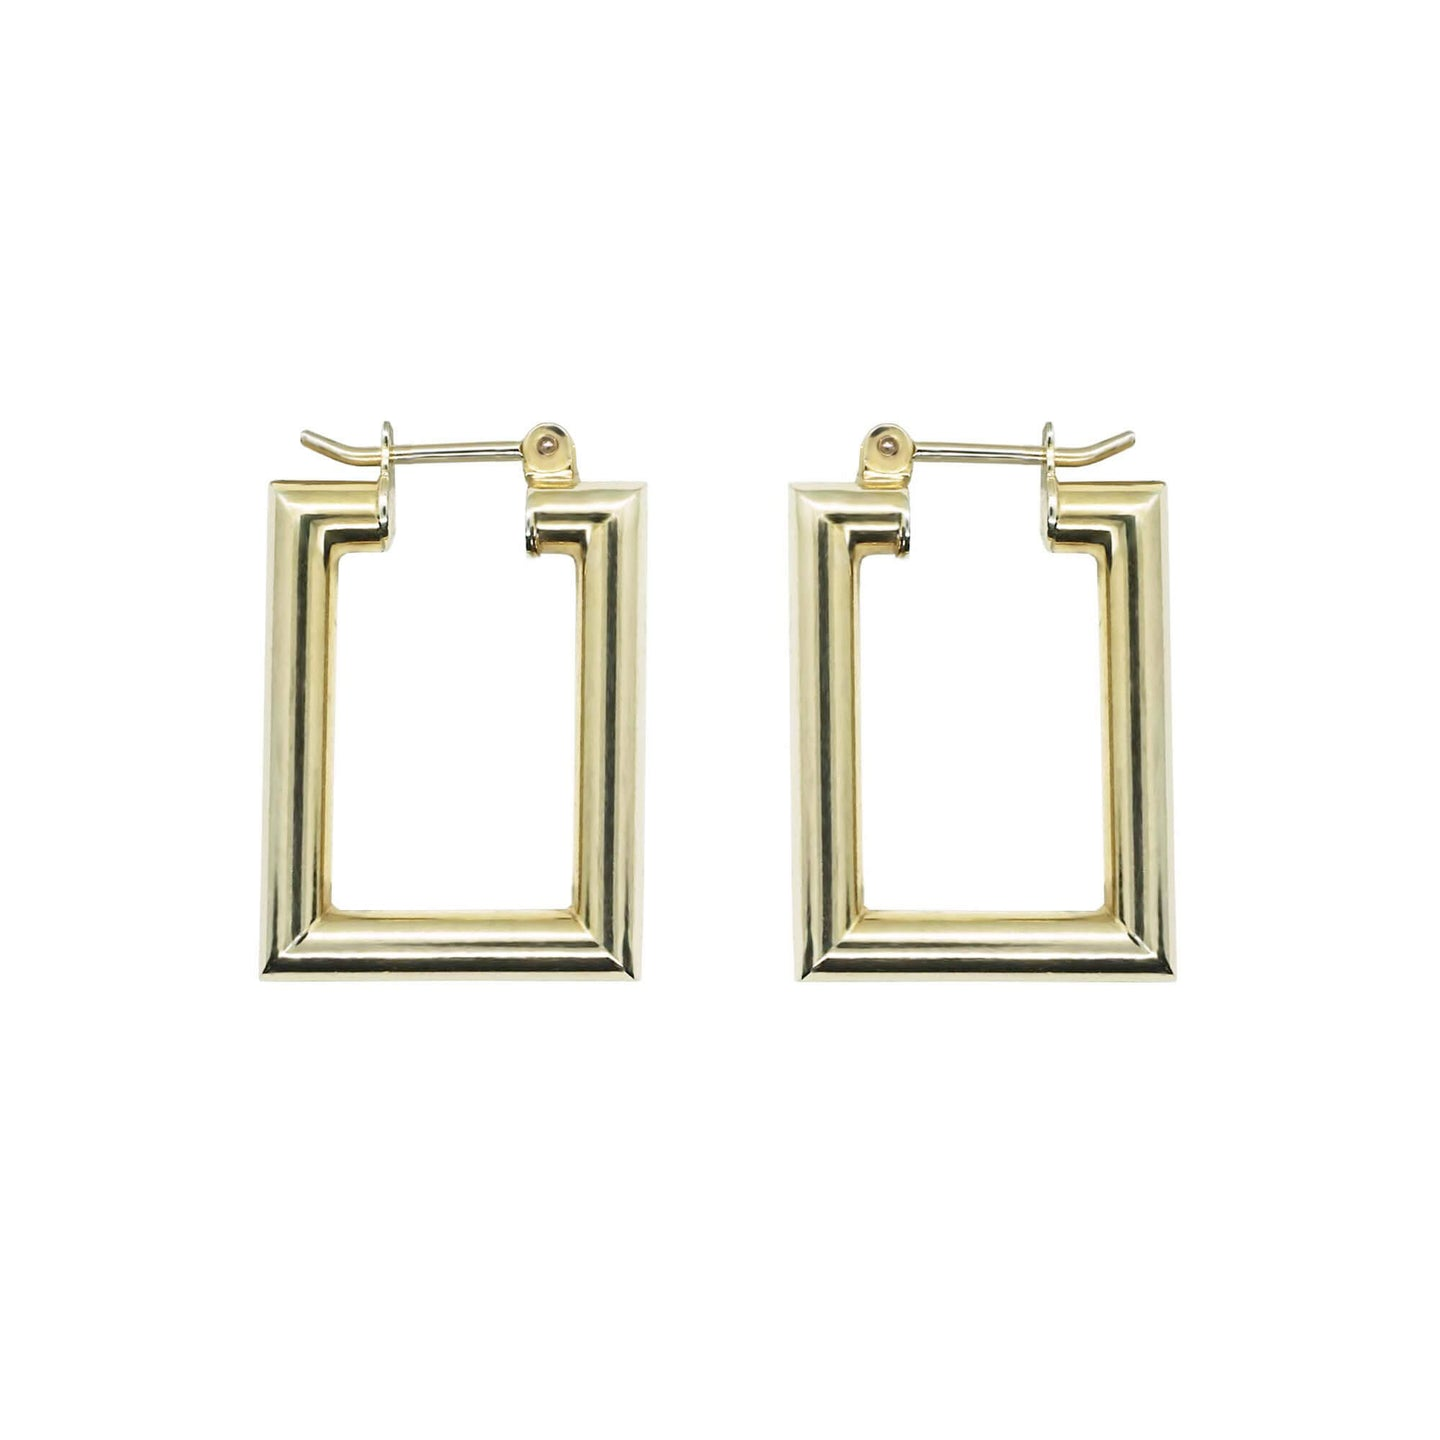 Pair of Pawnshop Gold Plated Sterling Silver Small Rectangle Hoop Earrings, hinge closure, white background.